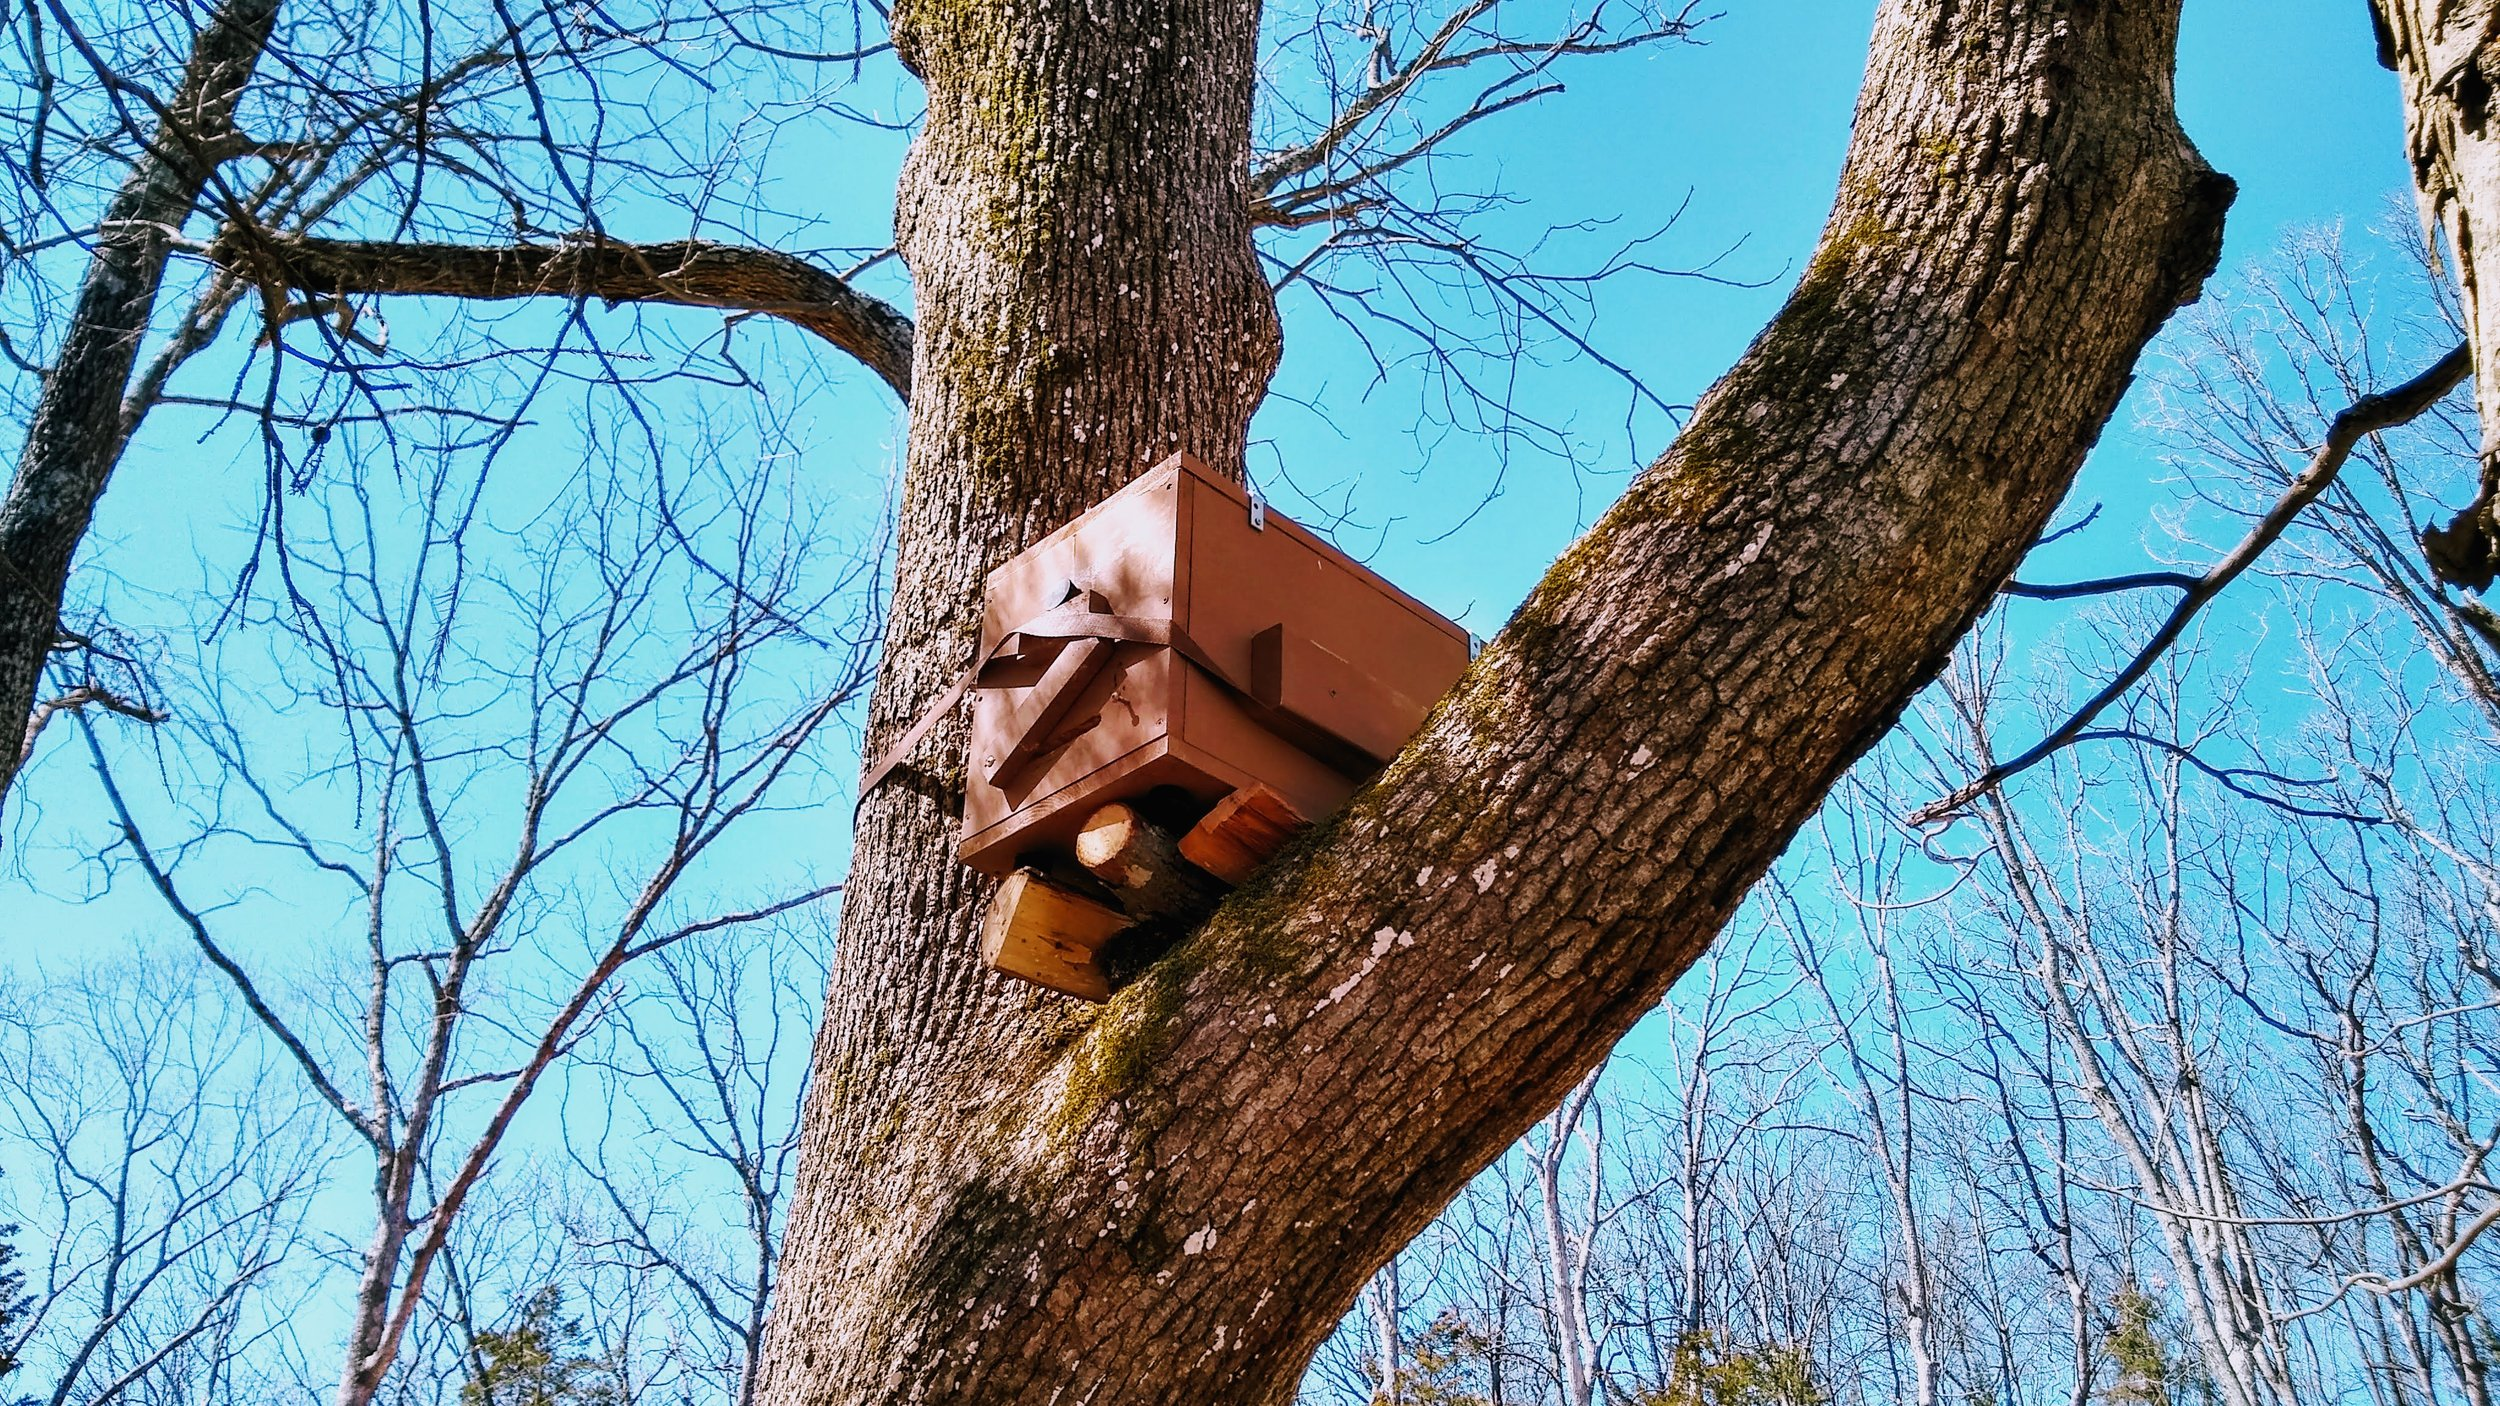 A swarm trap hung in a tree